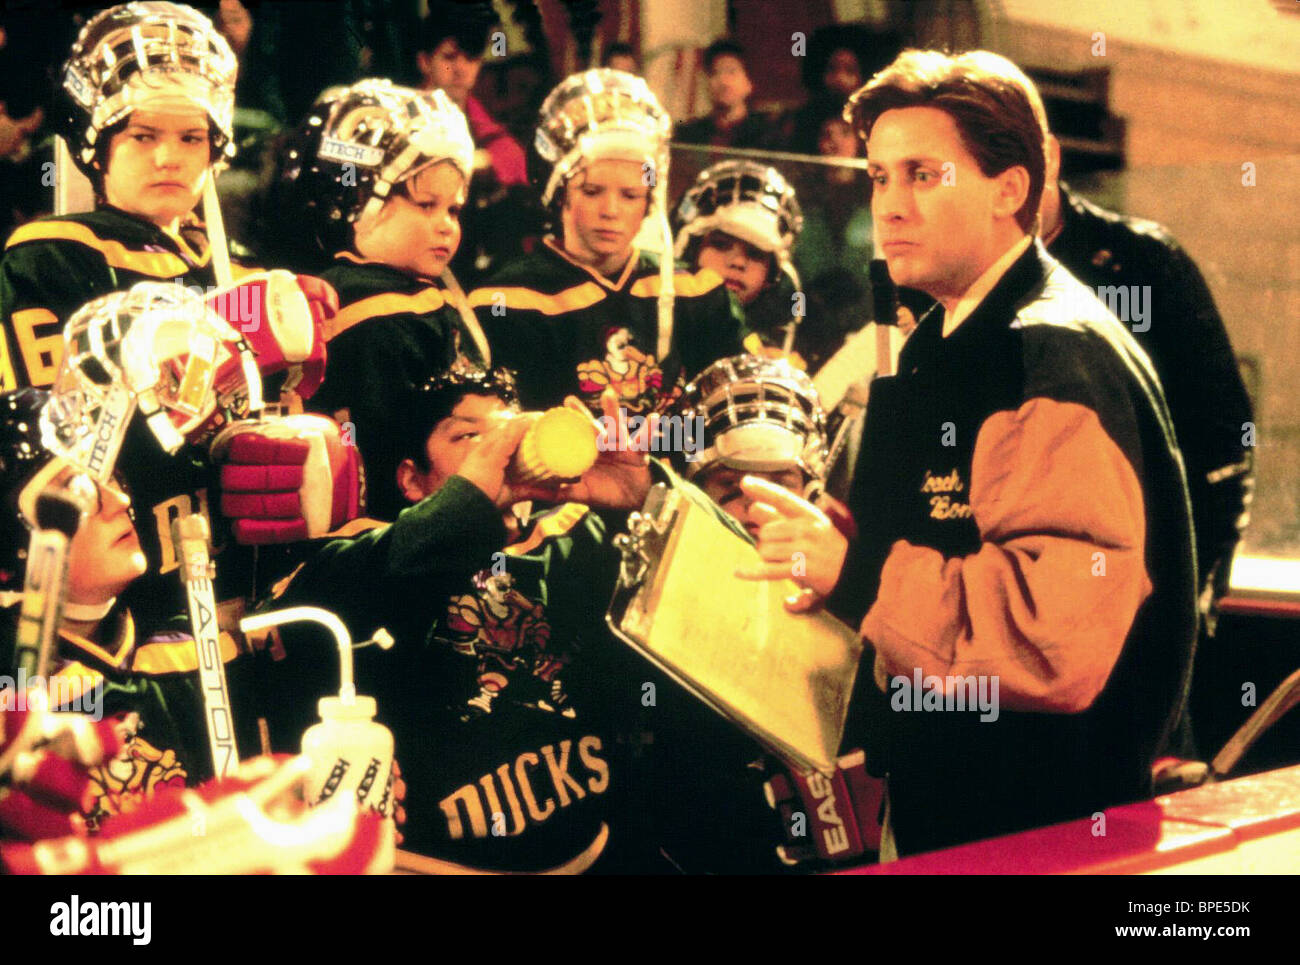 EMILIO ESTEVEZ THE MIGHTY DUCKS (1992) - Stock Image